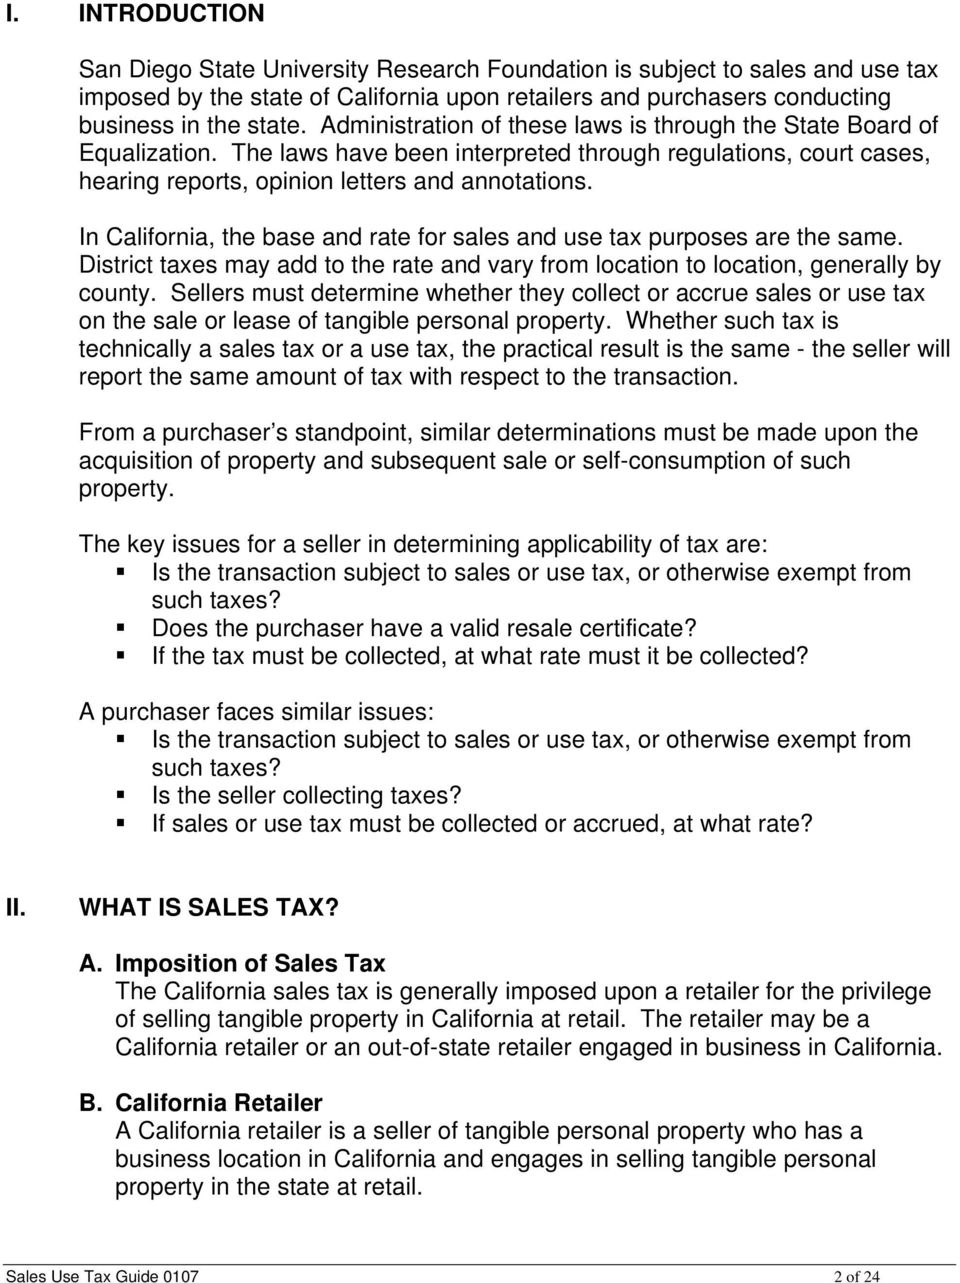 SALES AND USE TAX GUIDE - PDF